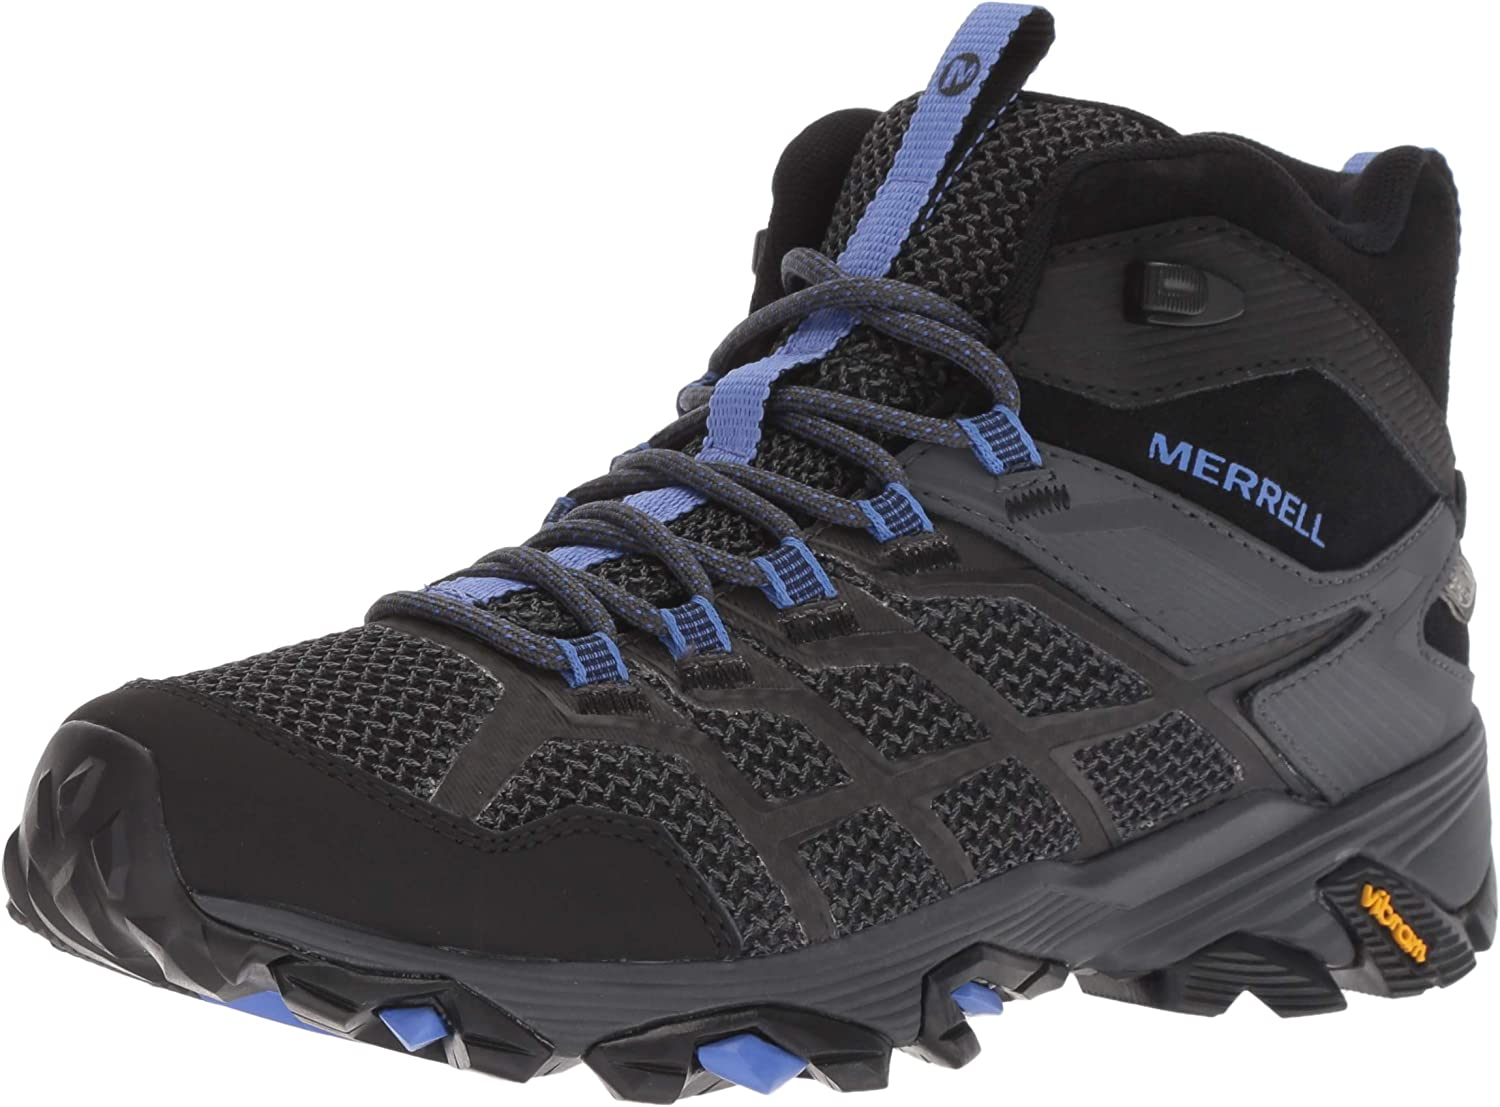 Merrell Women's Moab FST 2 Mid Waterproof Hiking shoes